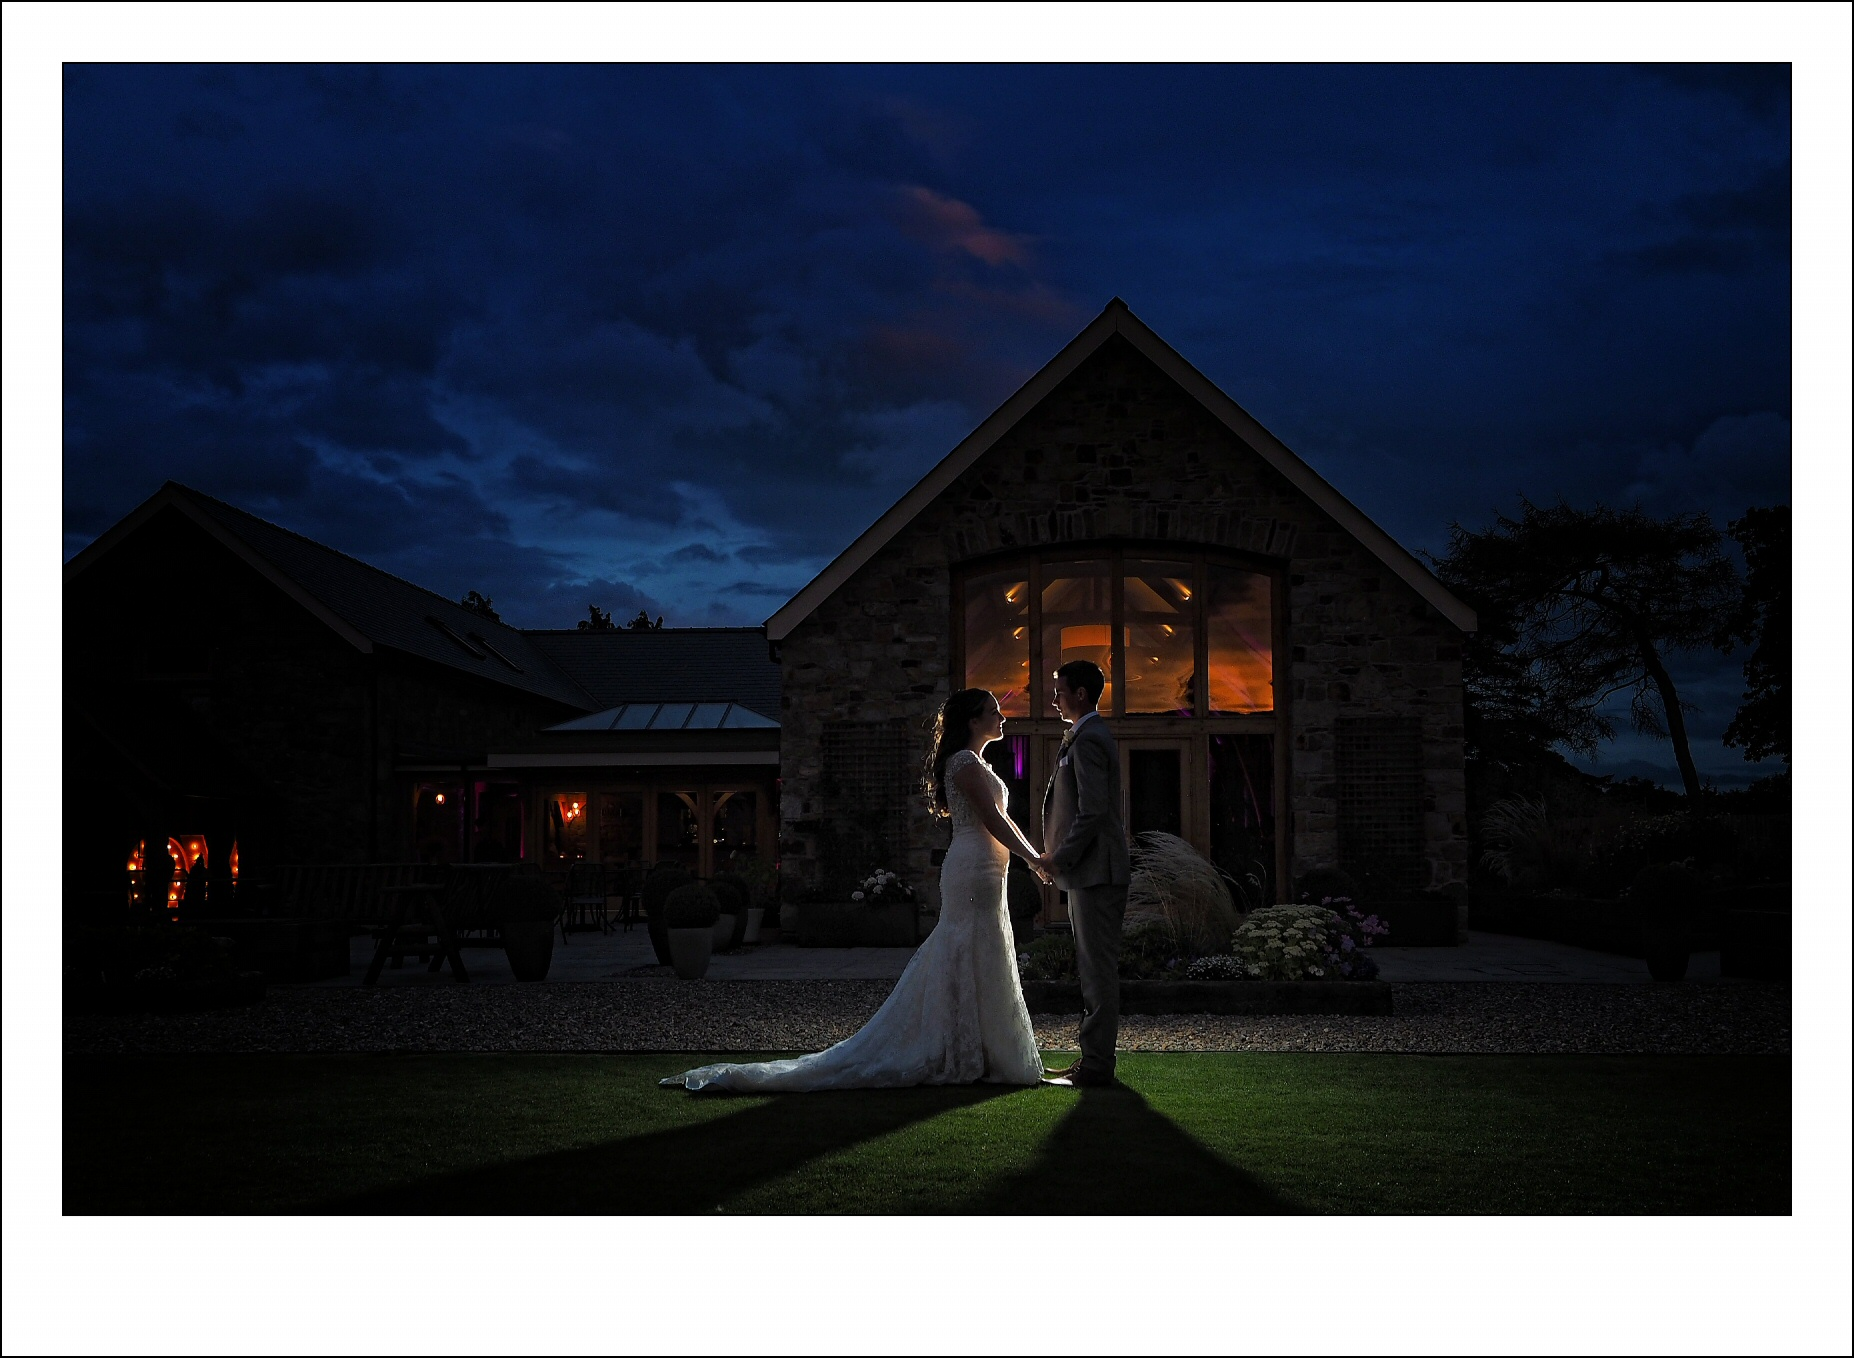 Stunning evening shots at tower hill barns